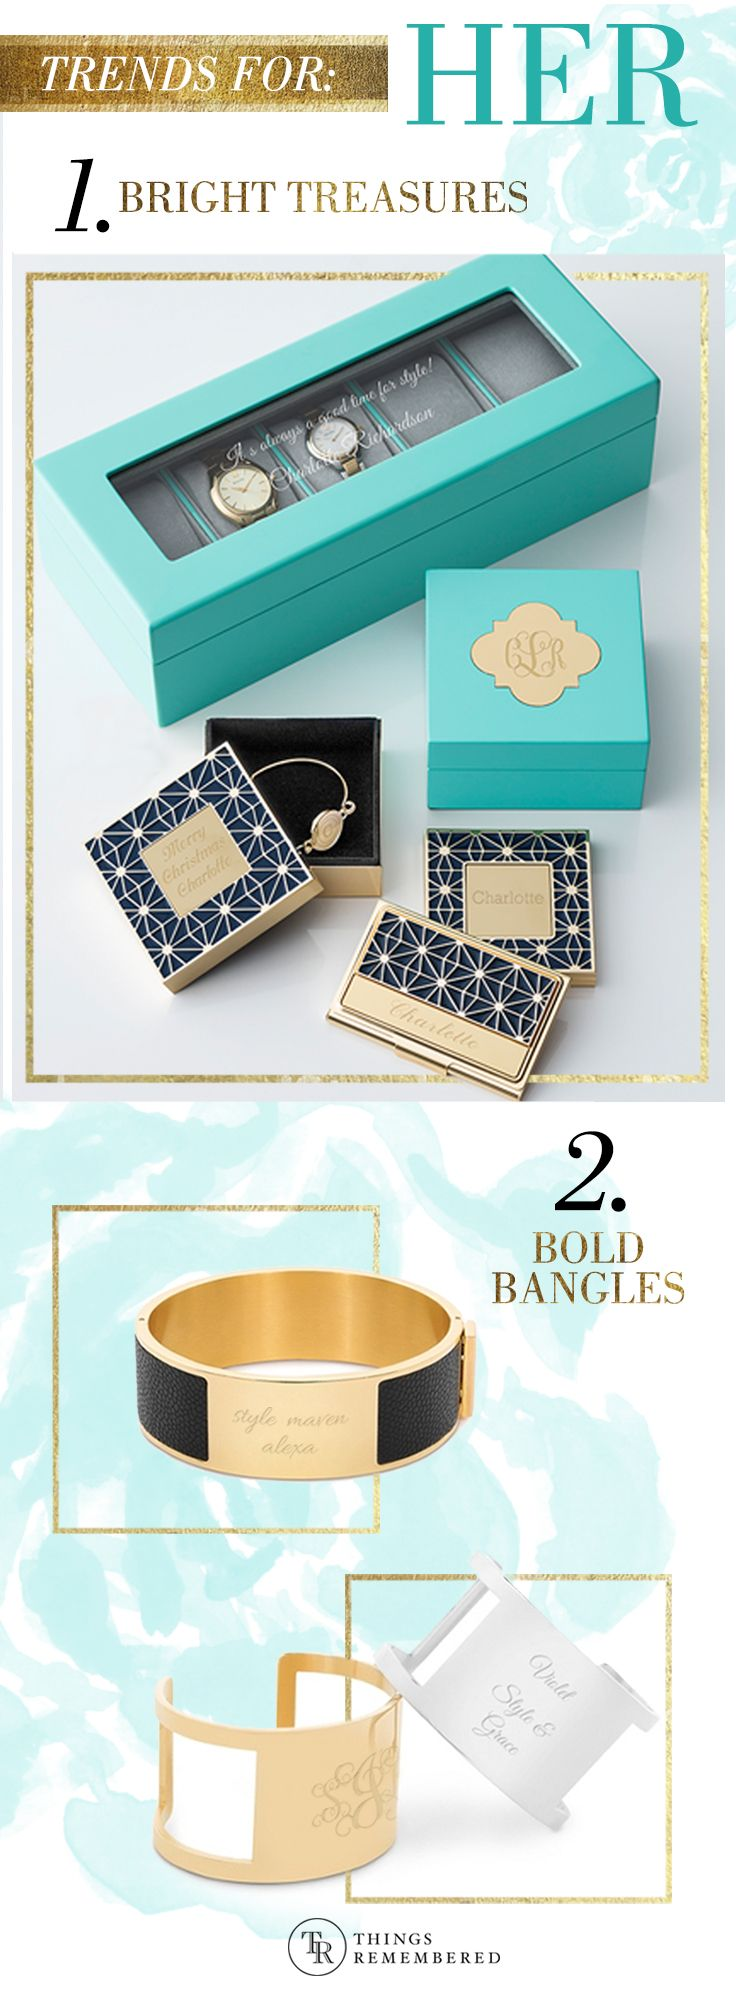 All the favorite season trends for this year, personalized! Striking statement cuffs and jewel-tone jewelry boxes to add flare and keep organized.